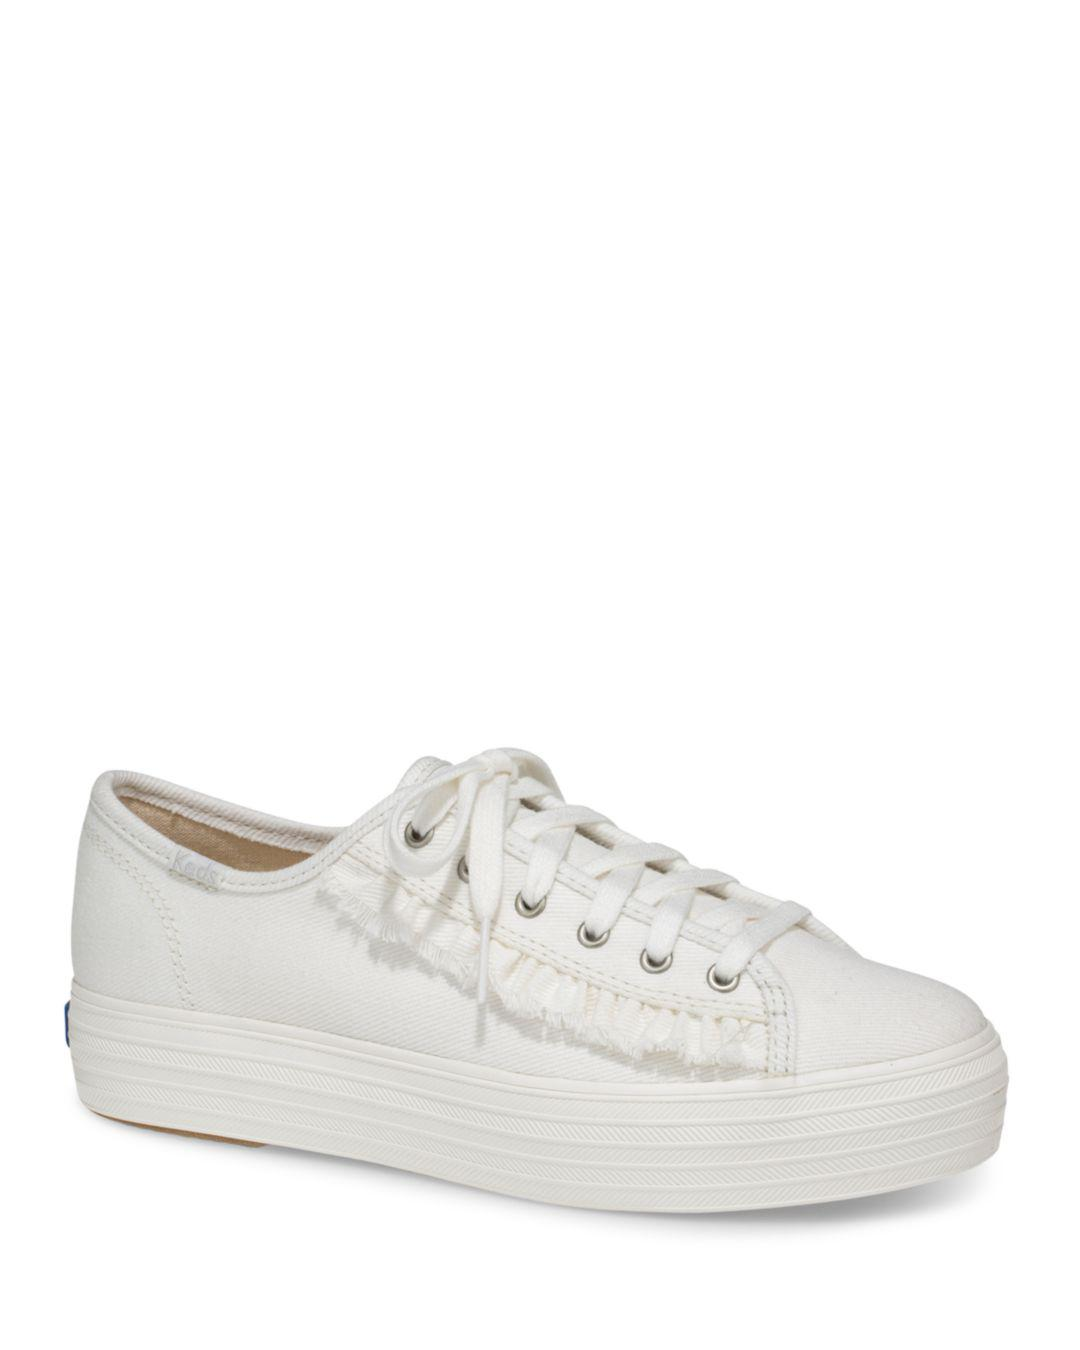 30d714a483a Keds Women s Ruffle Triple Kick Canvas Lace Up Sneakers in White - Lyst